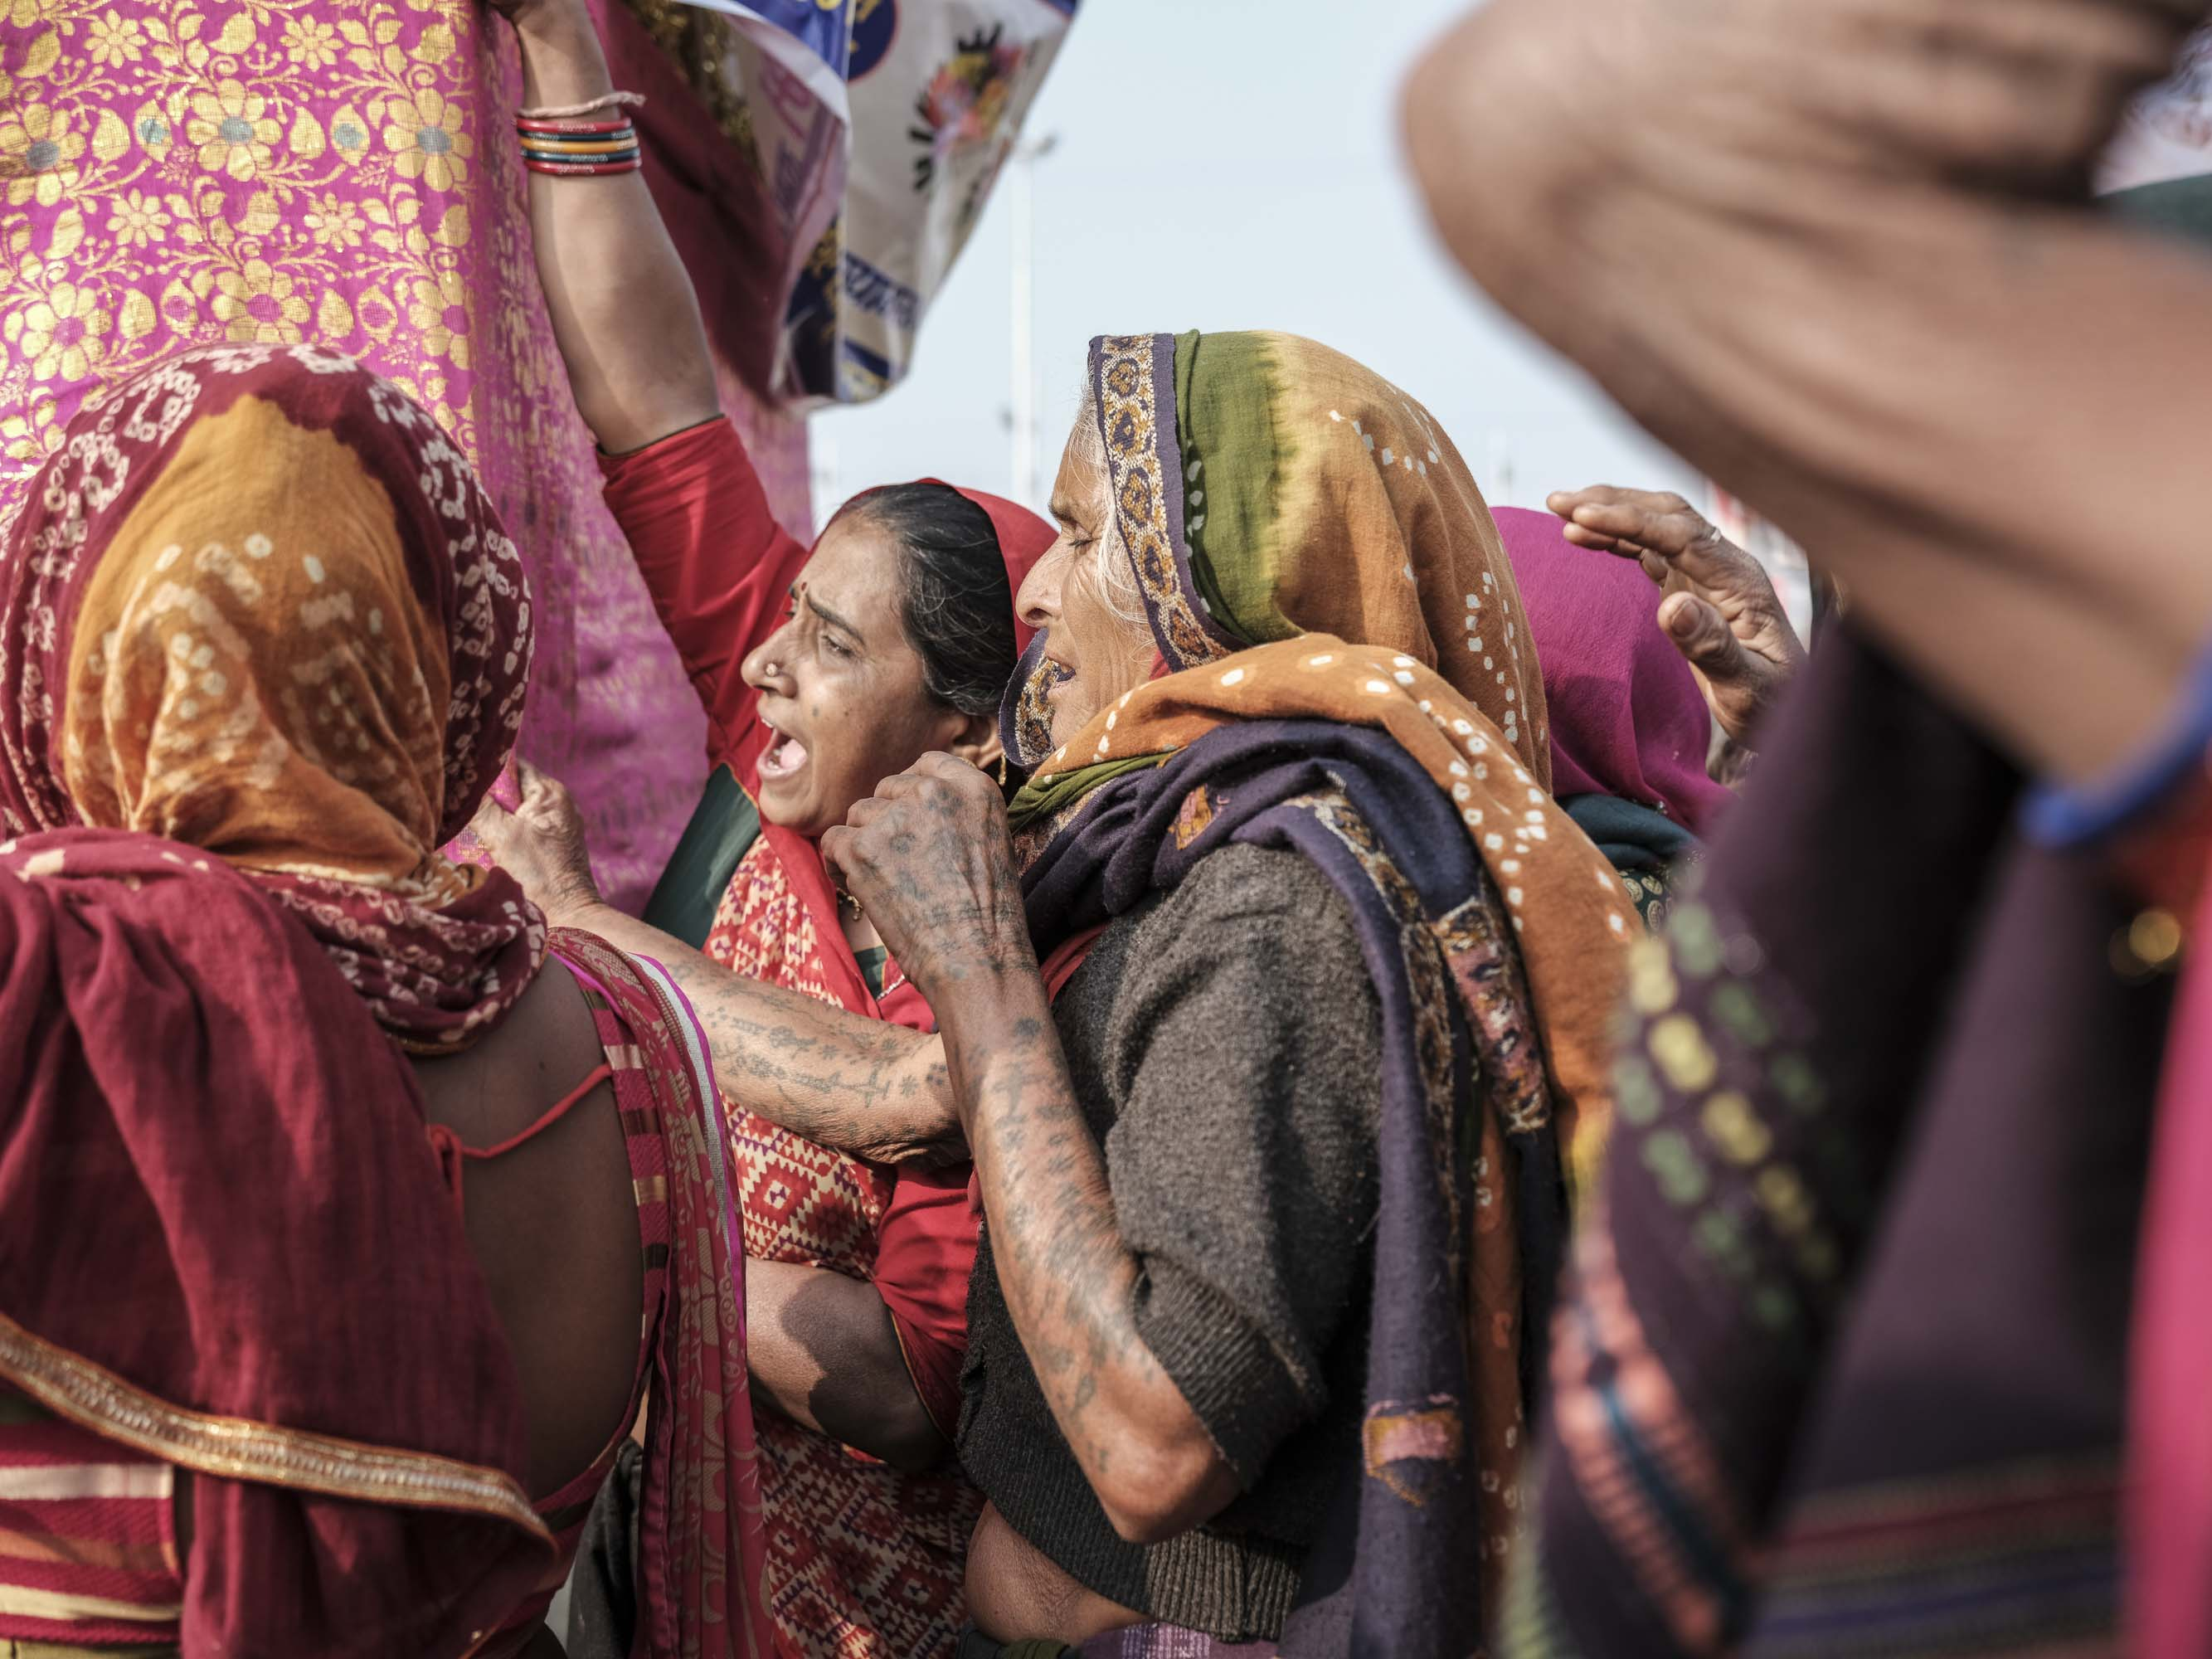 woman tattoo crowd 4 February pilgrims Kumbh mela 2019 India Allahabad Prayagraj Ardh hindu religious Festival event rivers photographer jose jeuland photography